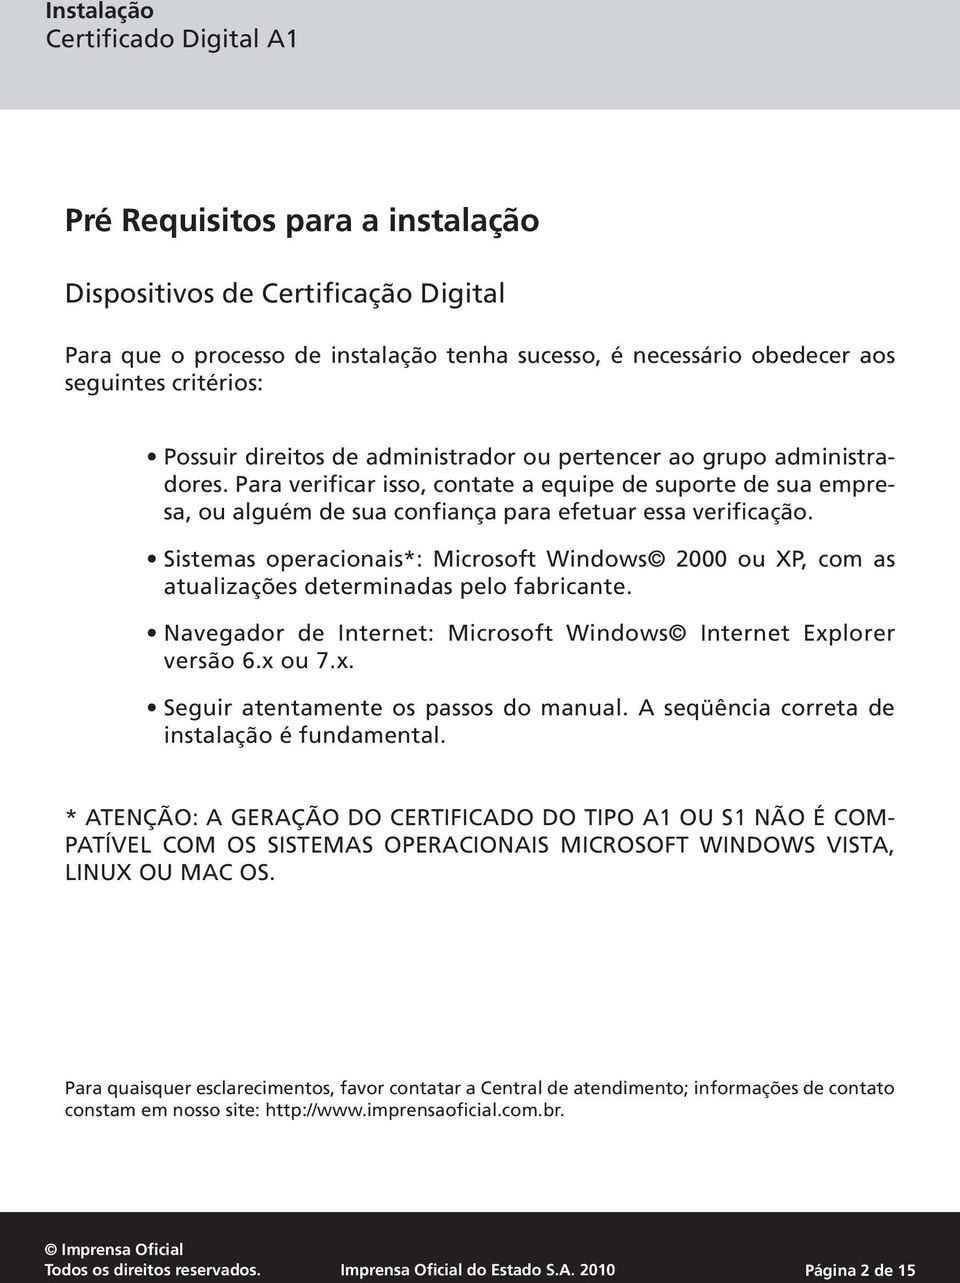 Sistemas operacionais*: Microsoft Windows 2000 ou XP, com as atualizações determinadas pelo fabricante. Navegador de Internet: Microsoft Windows Internet Explorer versão 6.x ou 7.x. Seguir atentamente os passos do manual.